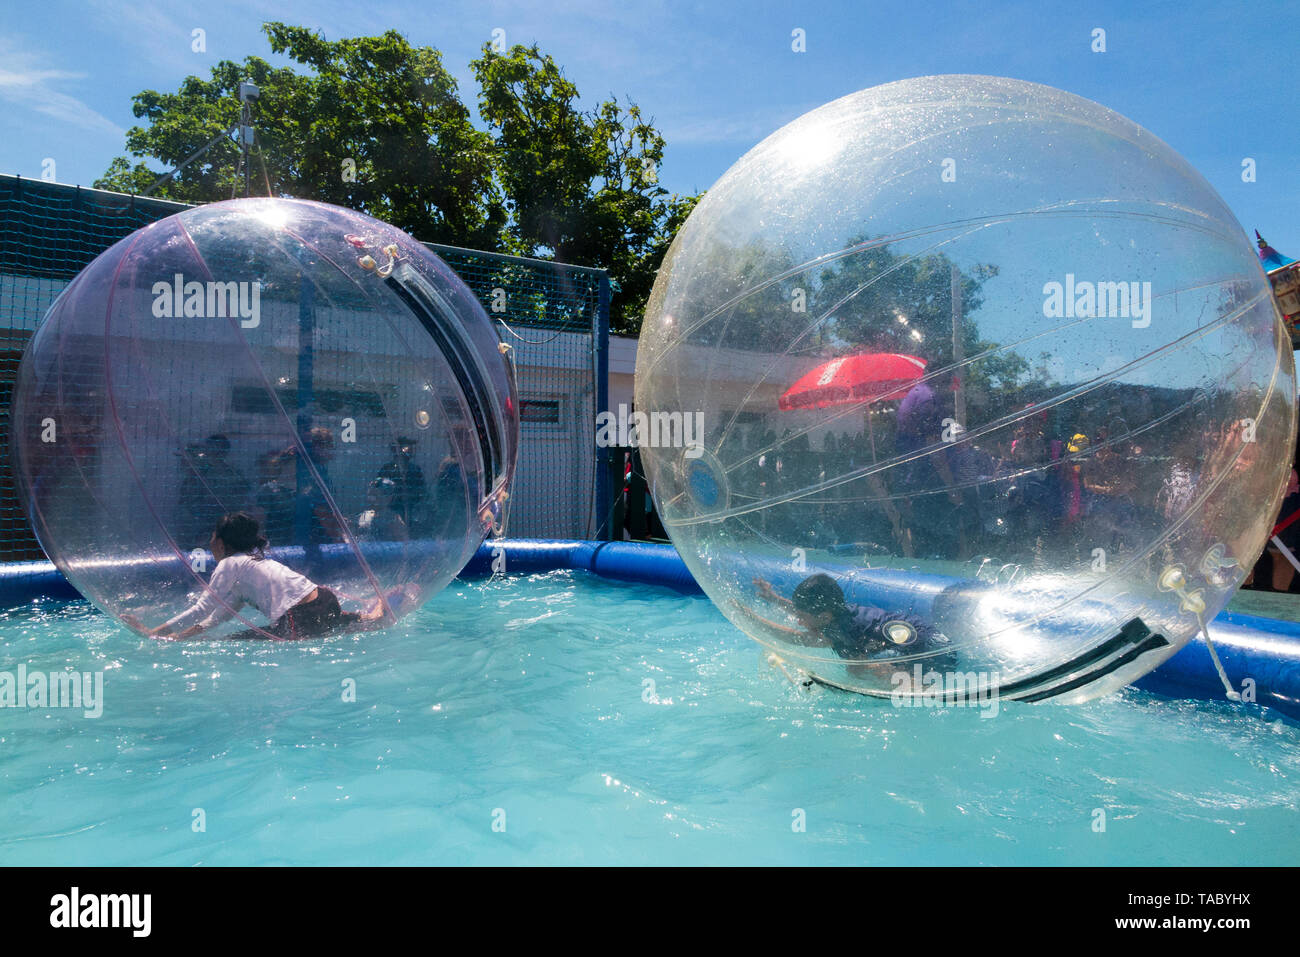 Children / kids enjoy rolling on the surface of a pool of water in inflatable balls called waterwalkerz which allow people to walk on water in a human hamster ball. (99) - Stock Image